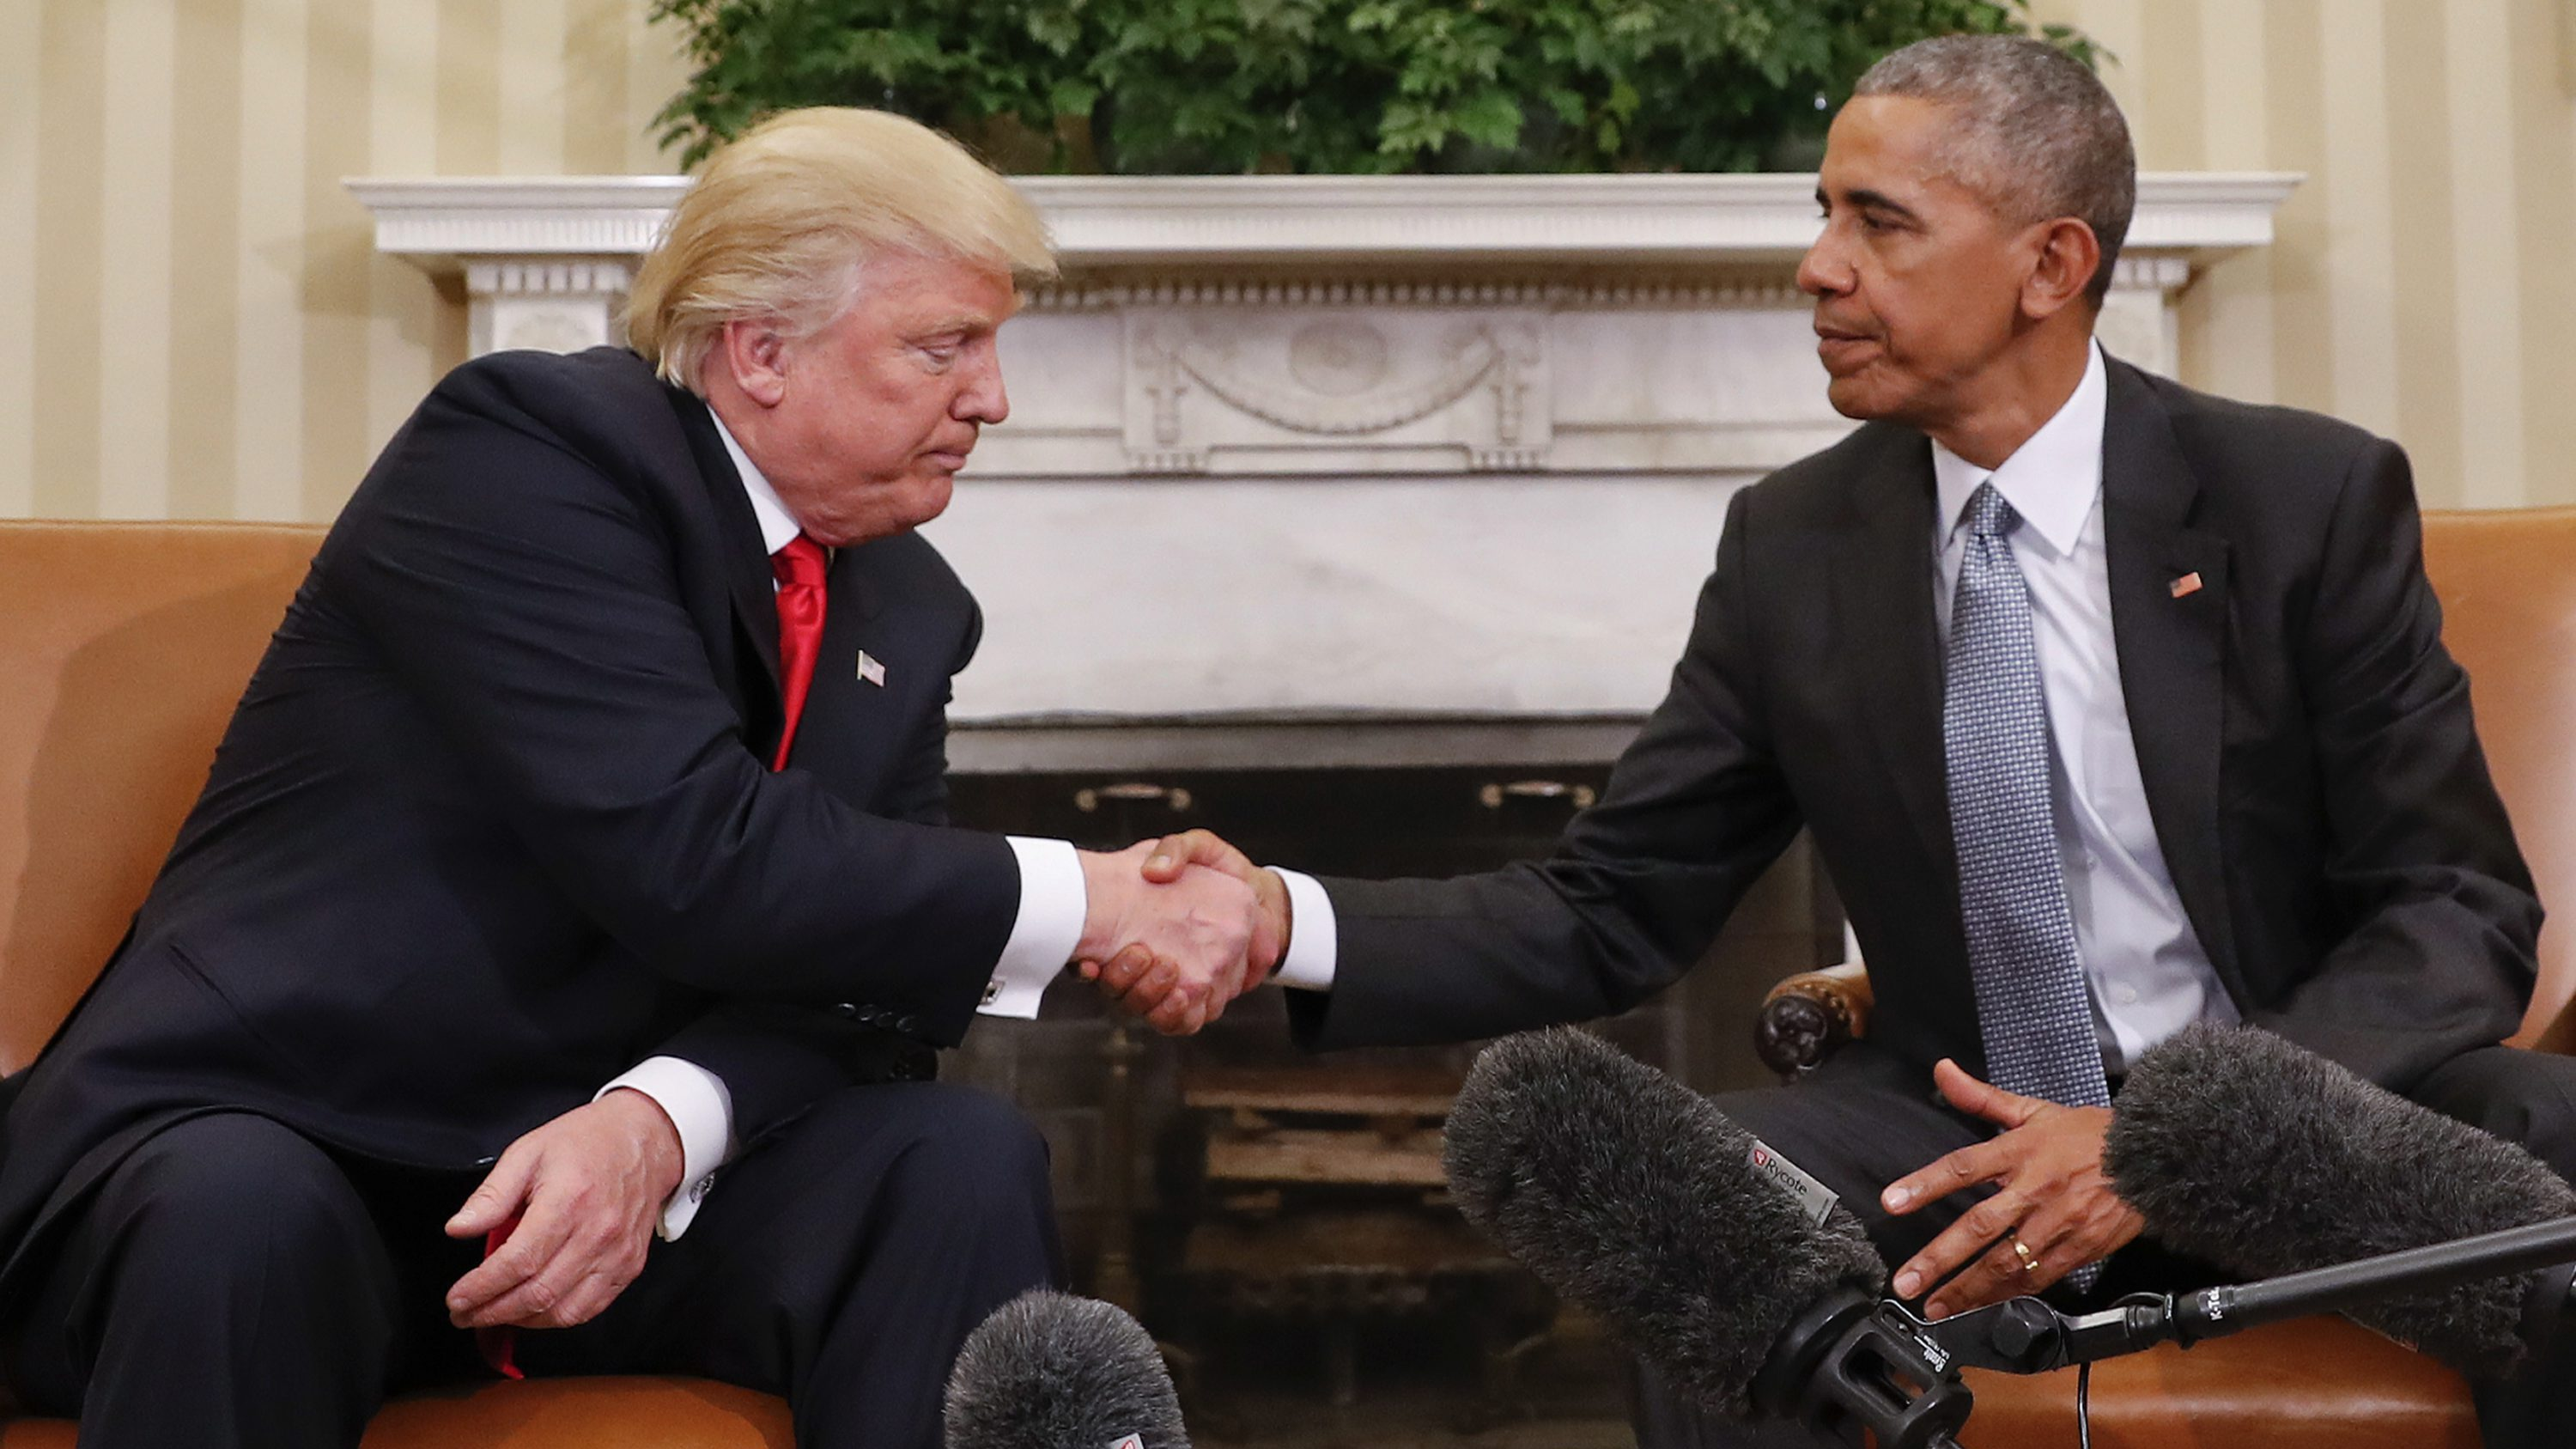 In this Nov. 10, 2016 photo, President Barack Obama and President-elect Donald Trump shake hands following their meeting in the Oval Office of the White House in Washington.